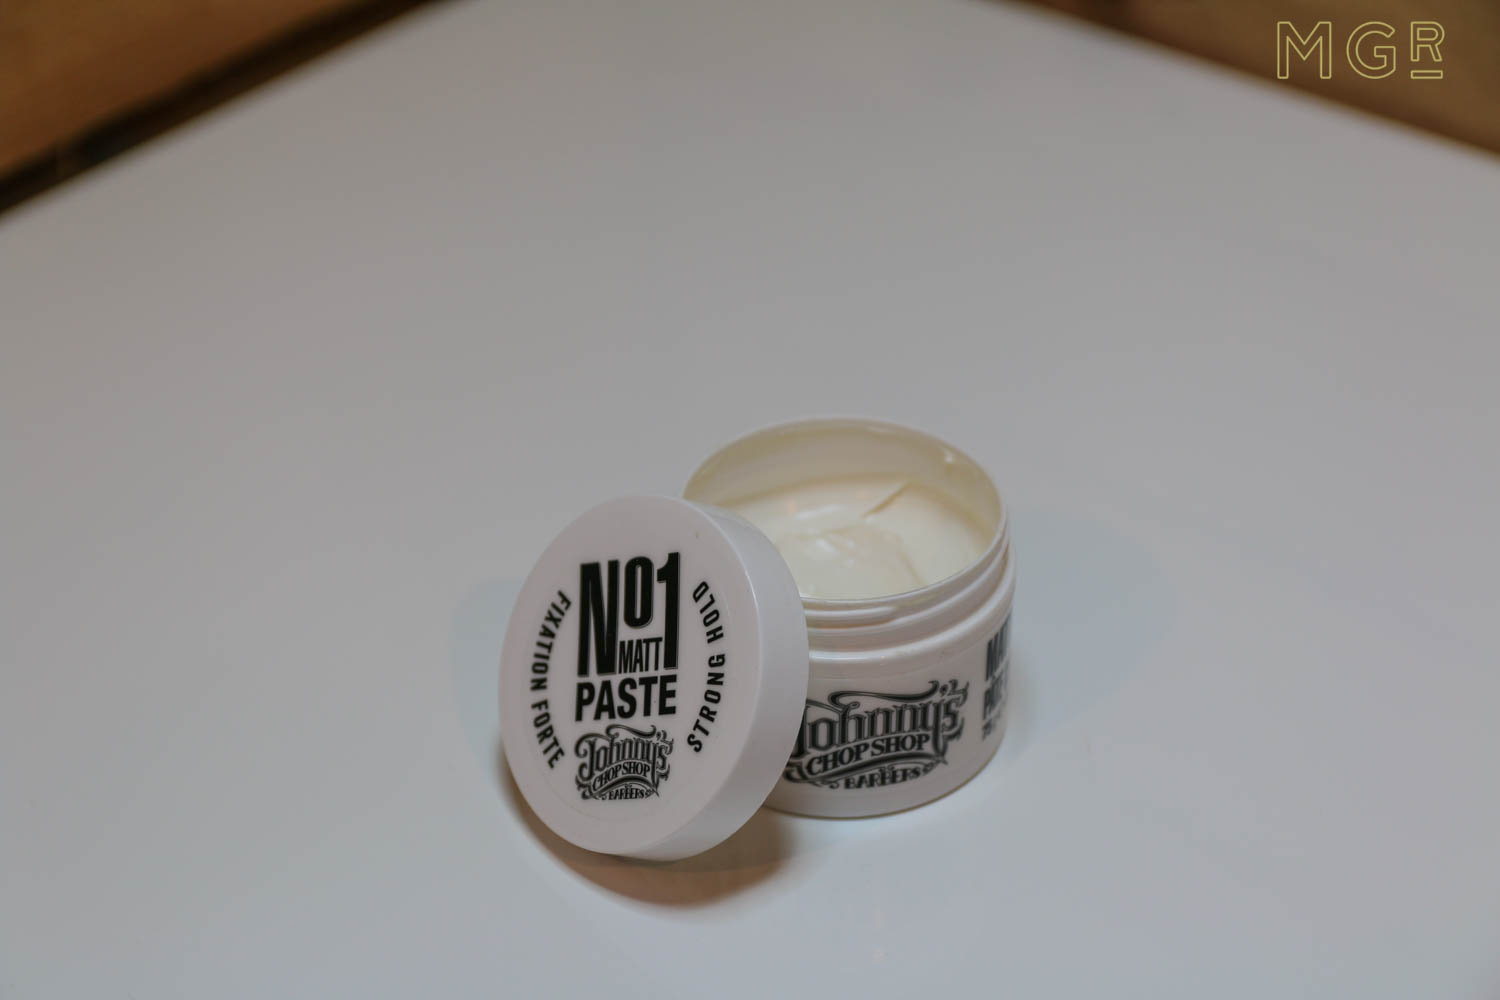 johnnys-chop-shop-no1-matt-hair-paste-review-3